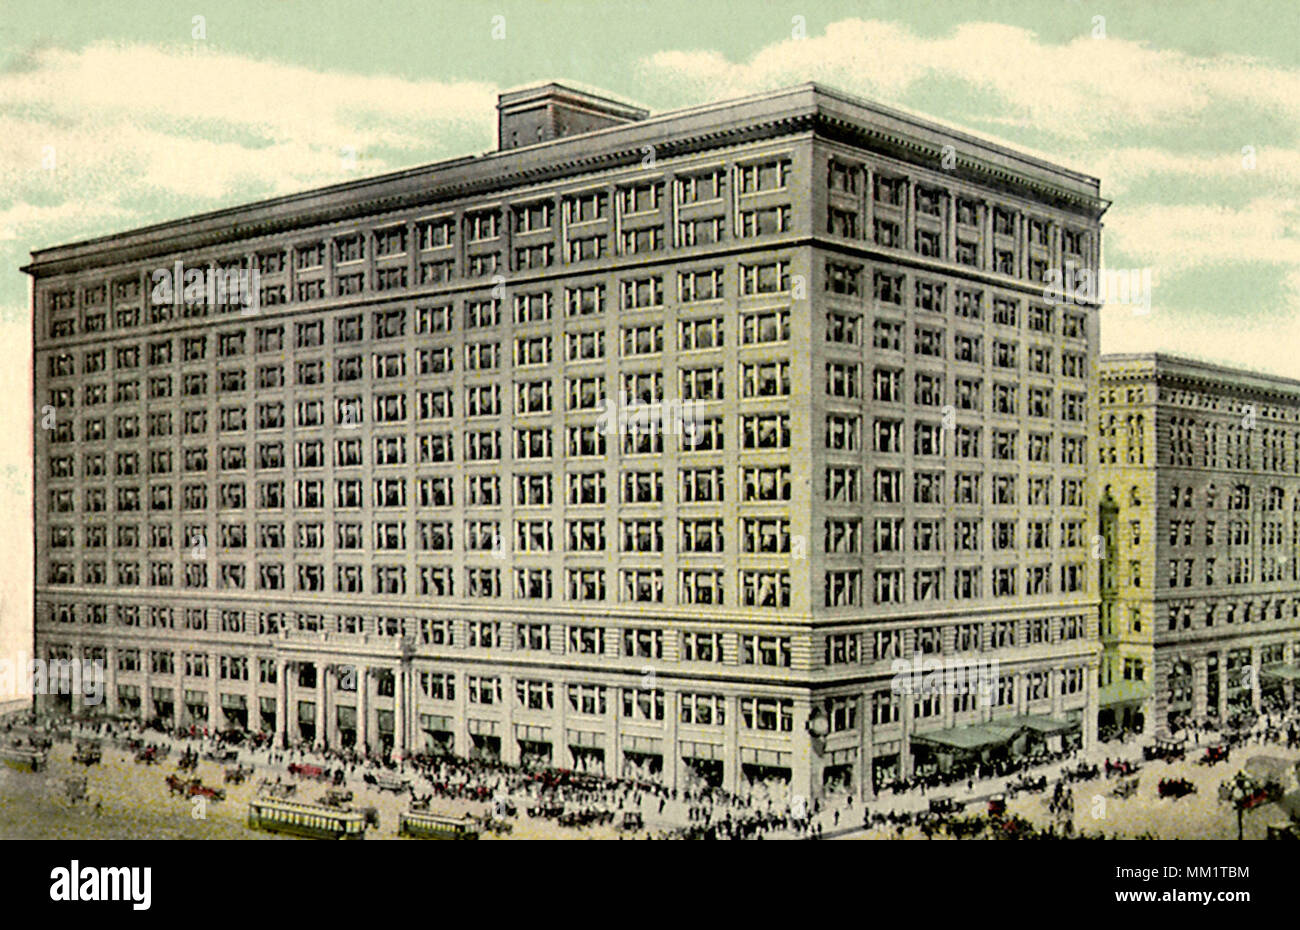 Marshall Field and Company. Chicago. 1910 - Stock Image